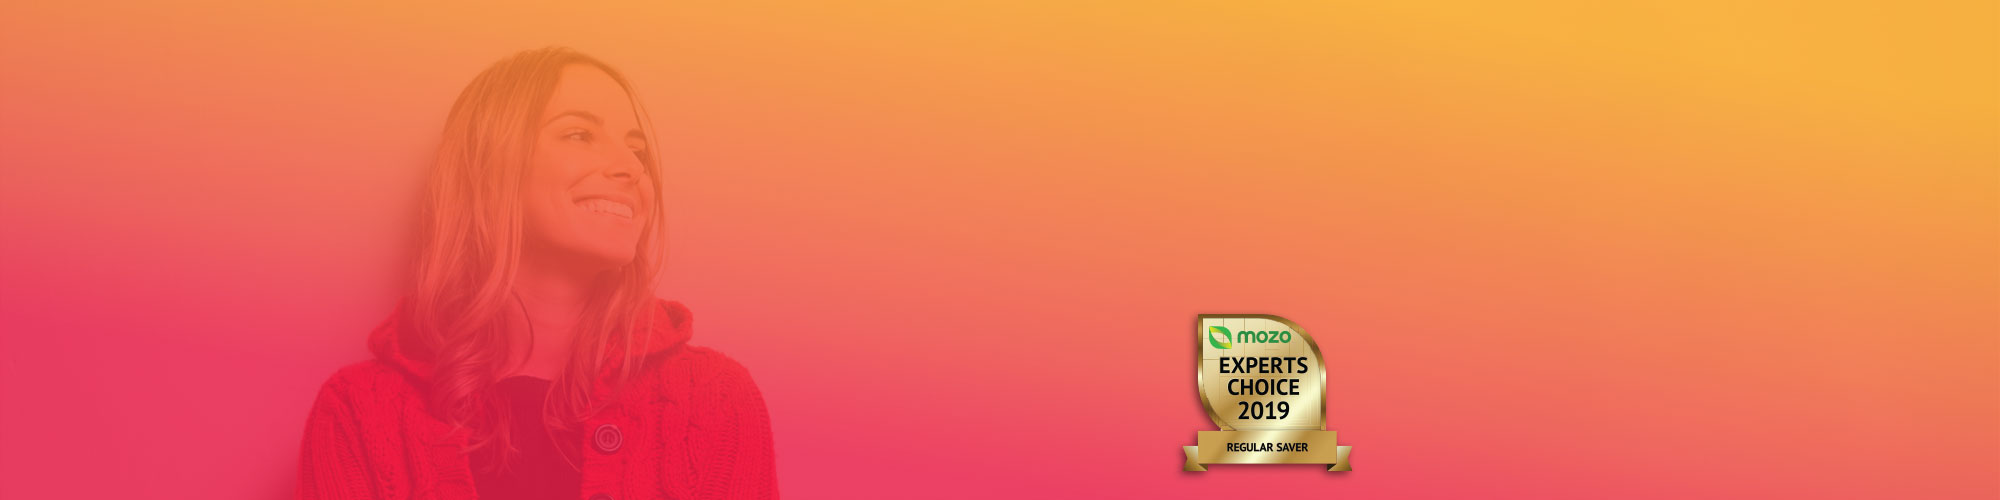 The Lifestyle account for 18-35year olds has been awarded best value regular saver for 2019.